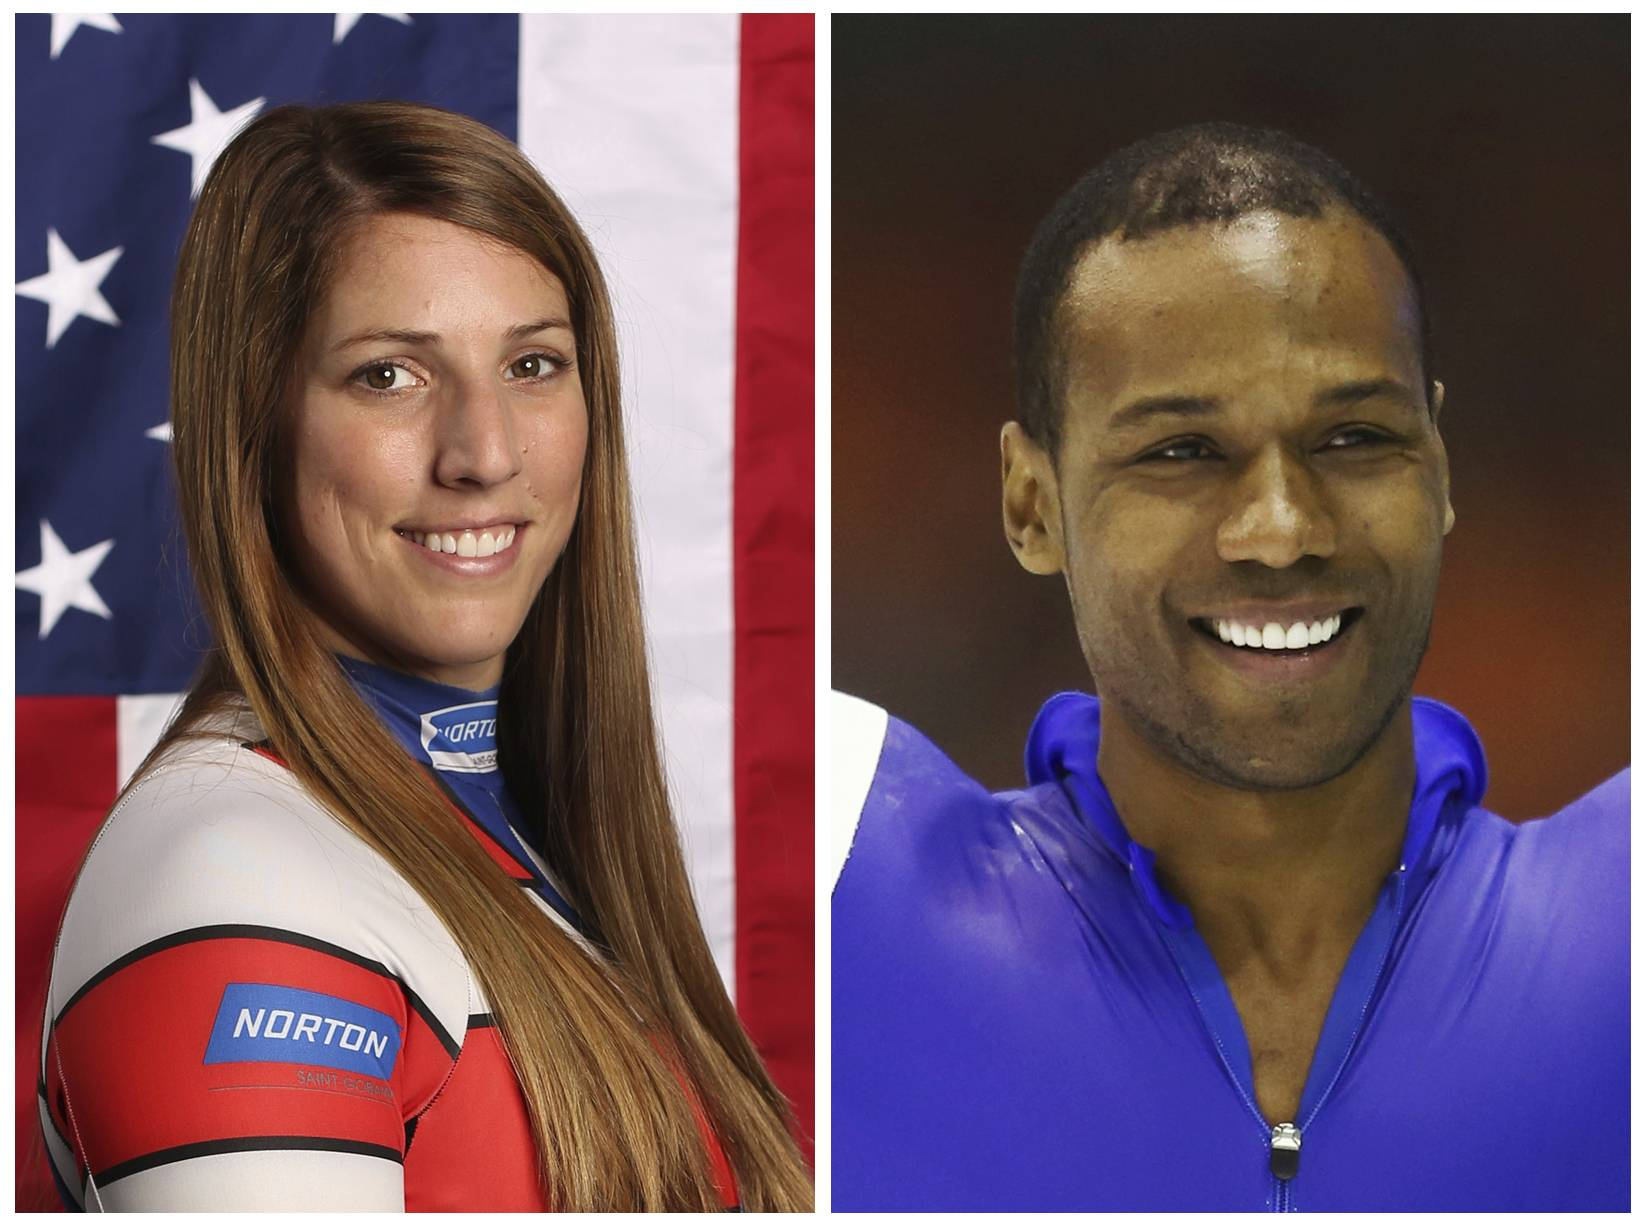 "This combination of images shows United States' athletes Erin Hamlin, left, and Shani Davis. A tweet posted to the account of Davis is blasting the selection of luge athlete Hamlin as the U.S. flagbearer for the opening ceremony at the Pyeongchang Games. The tweet says the selection was made ""dishonorably,"" and included a reference to Black History Month in a hashtag. Hamlin and Davis each got four votes in the final balloting of the athlete-led process."